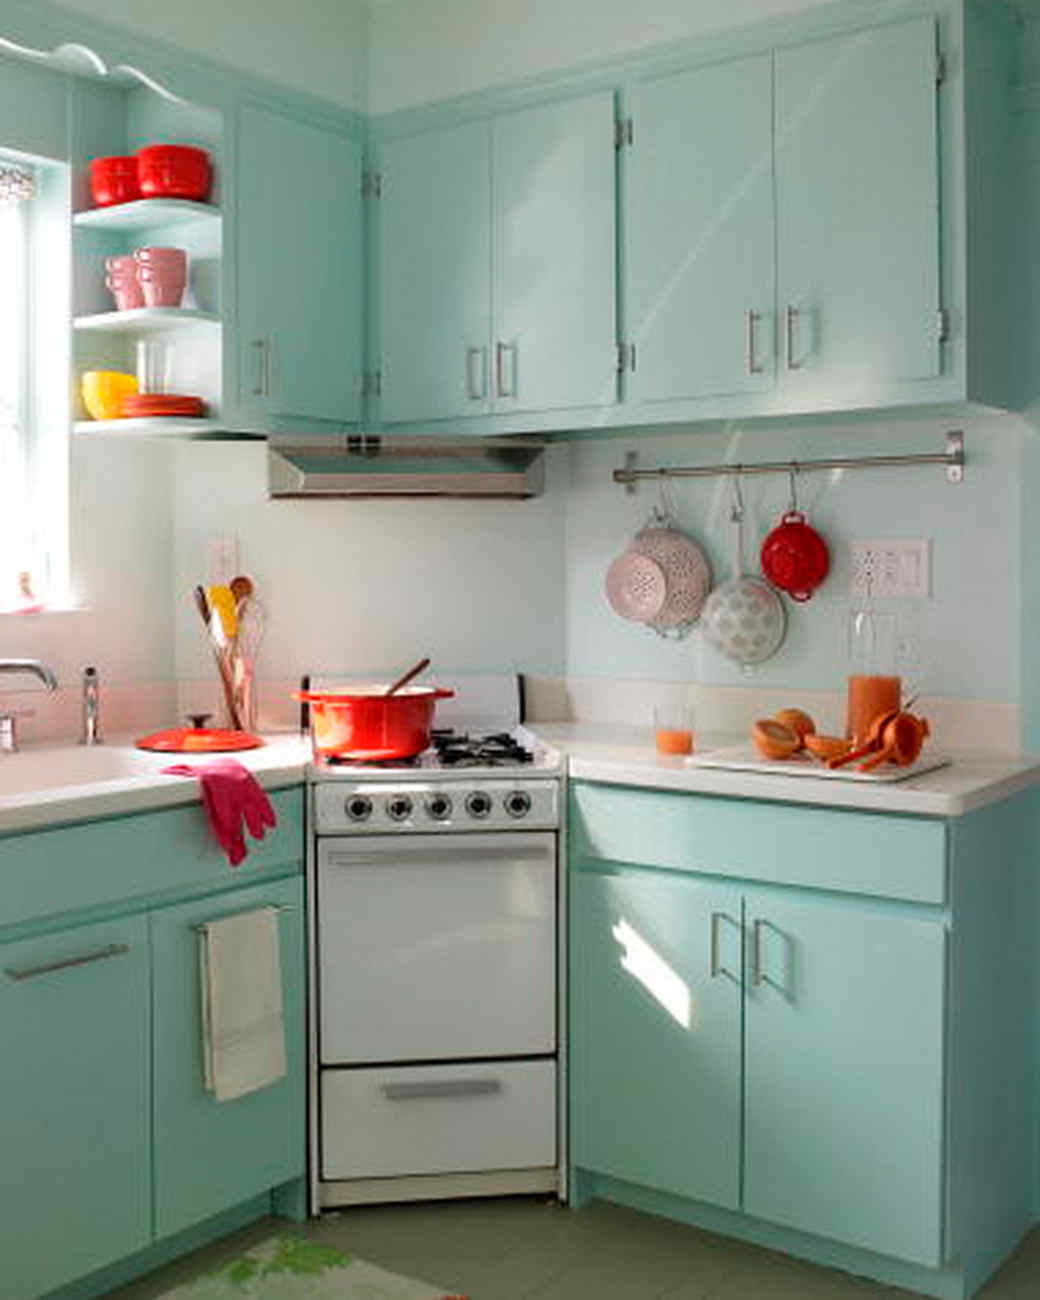 A Kitchen Makeover on a Budget | Martha Stewart